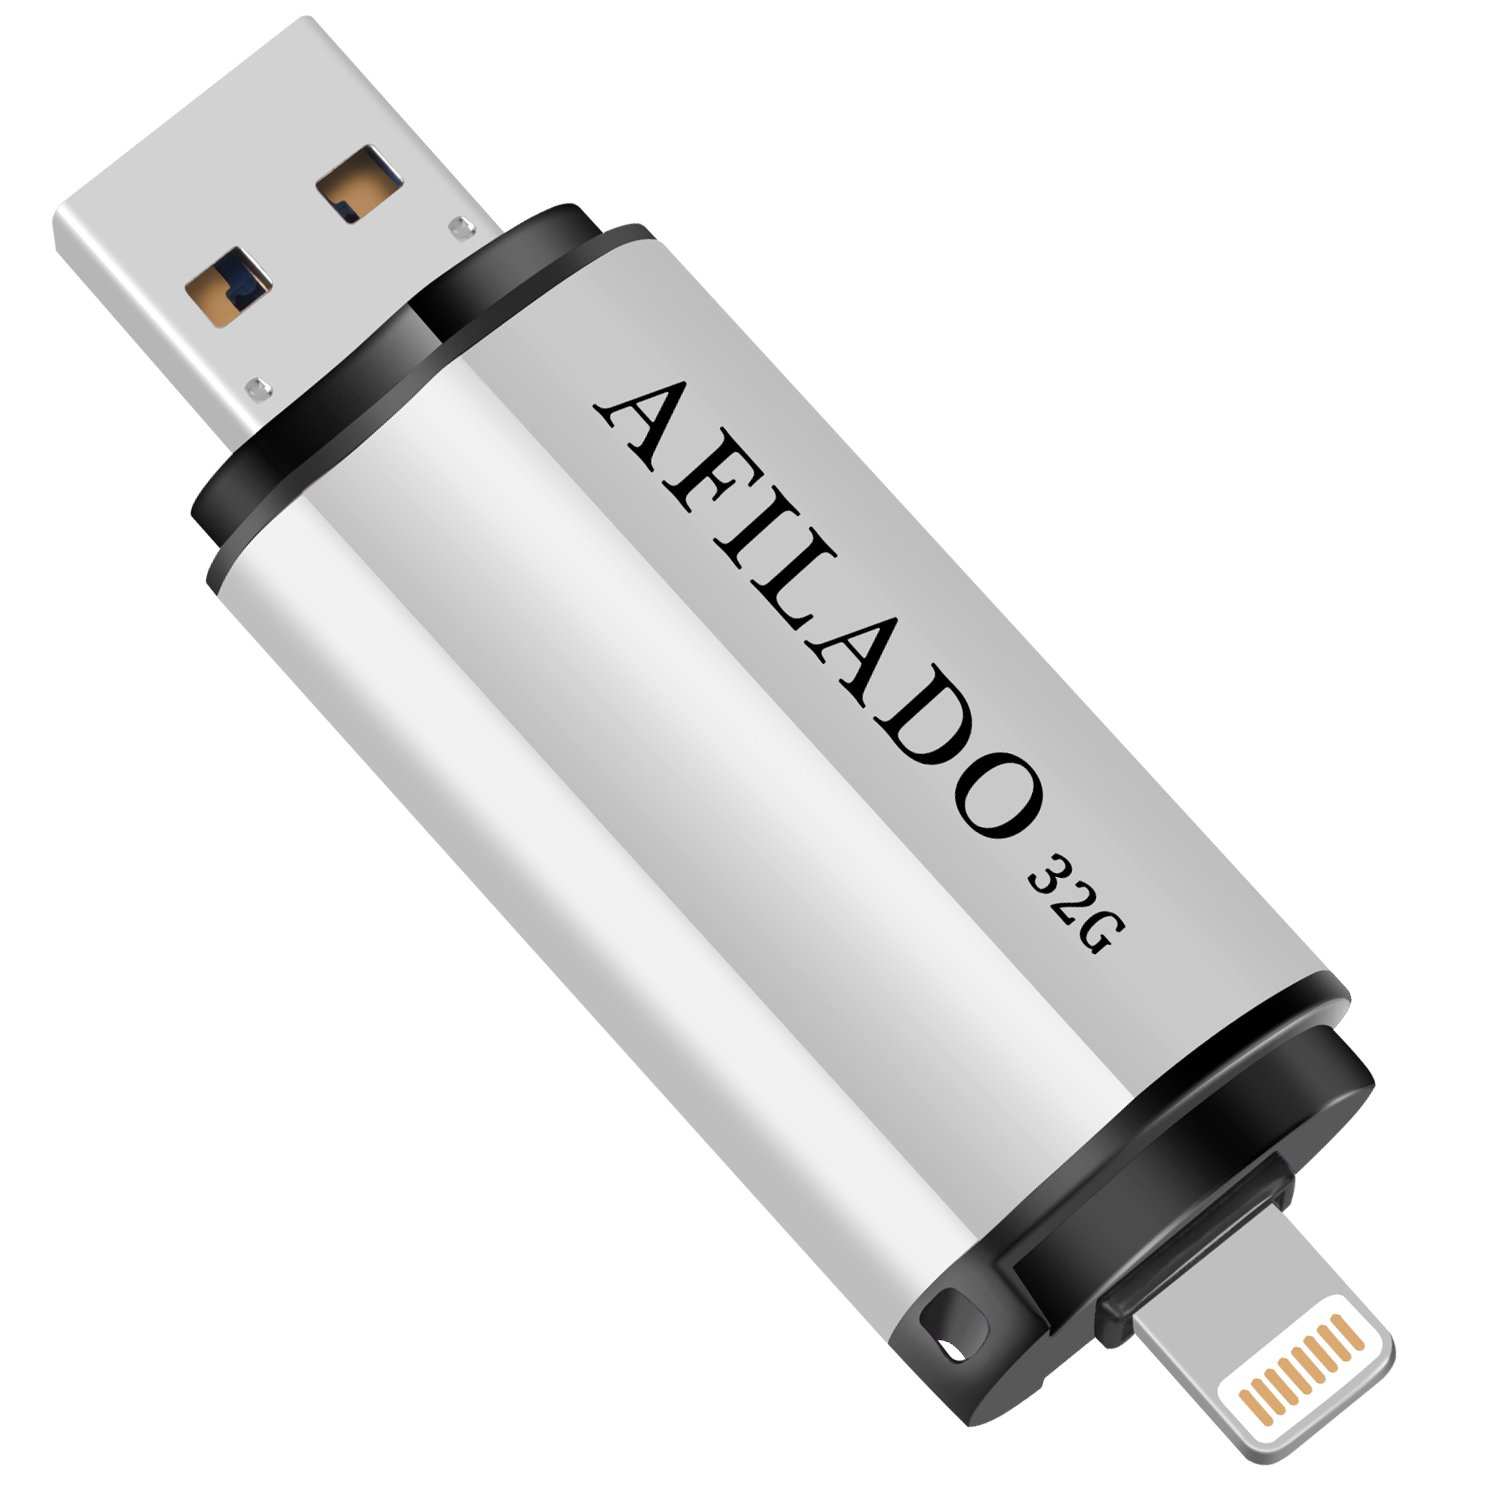 iPhone Flash Drive 32GB USB 3.0 Memory Stick, AFILADO iOS Thumb Pen Drive, Lightning External Storage Expansion Compatible Apple iPad/iPhone / Android & Computers (Silver)